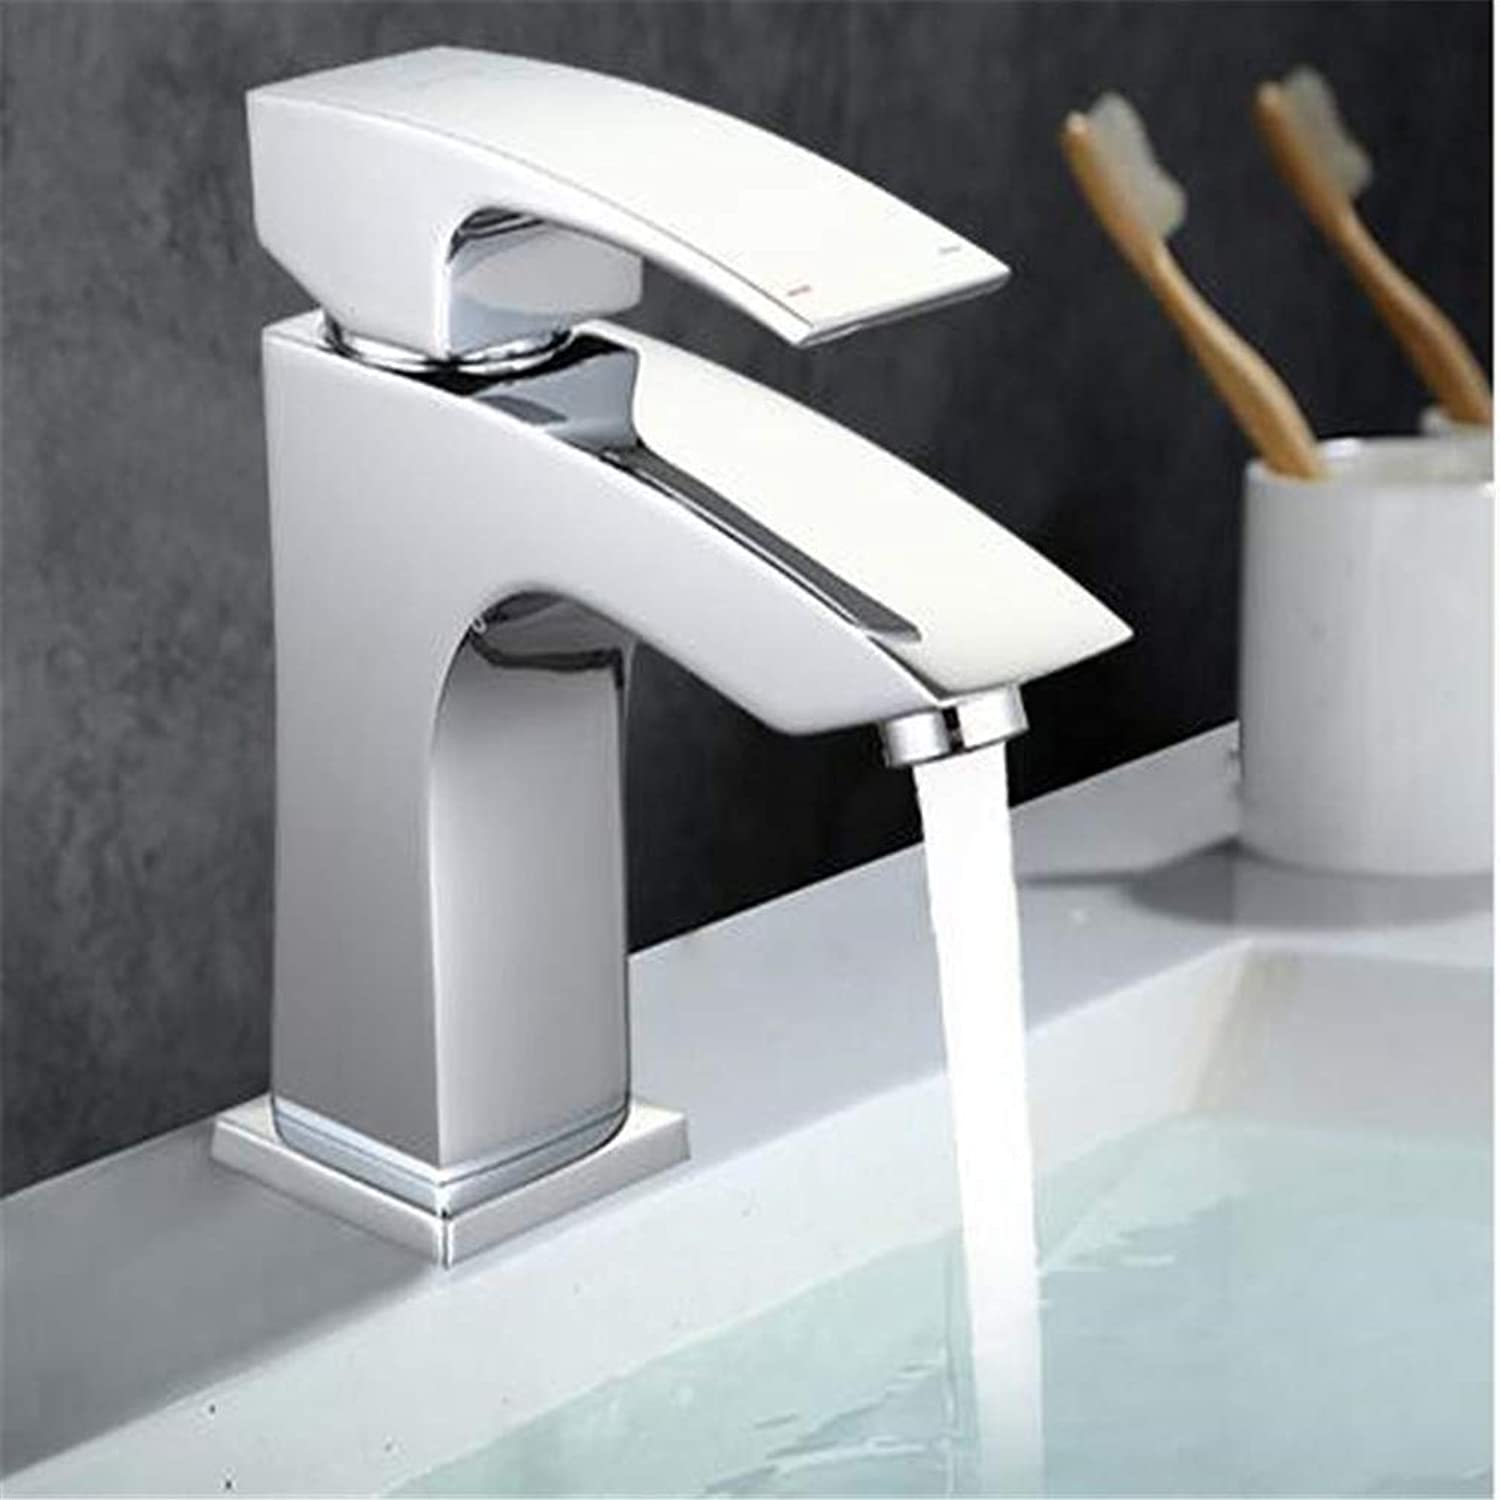 Bathroom Taps Basin Mixer Taps Bathroom Faucet Sink Tapsbath Water Mixer Water Faucet Bathroom Basin Mixer Basin Faucet Basin Mixer Sink Mixer Tap Bath